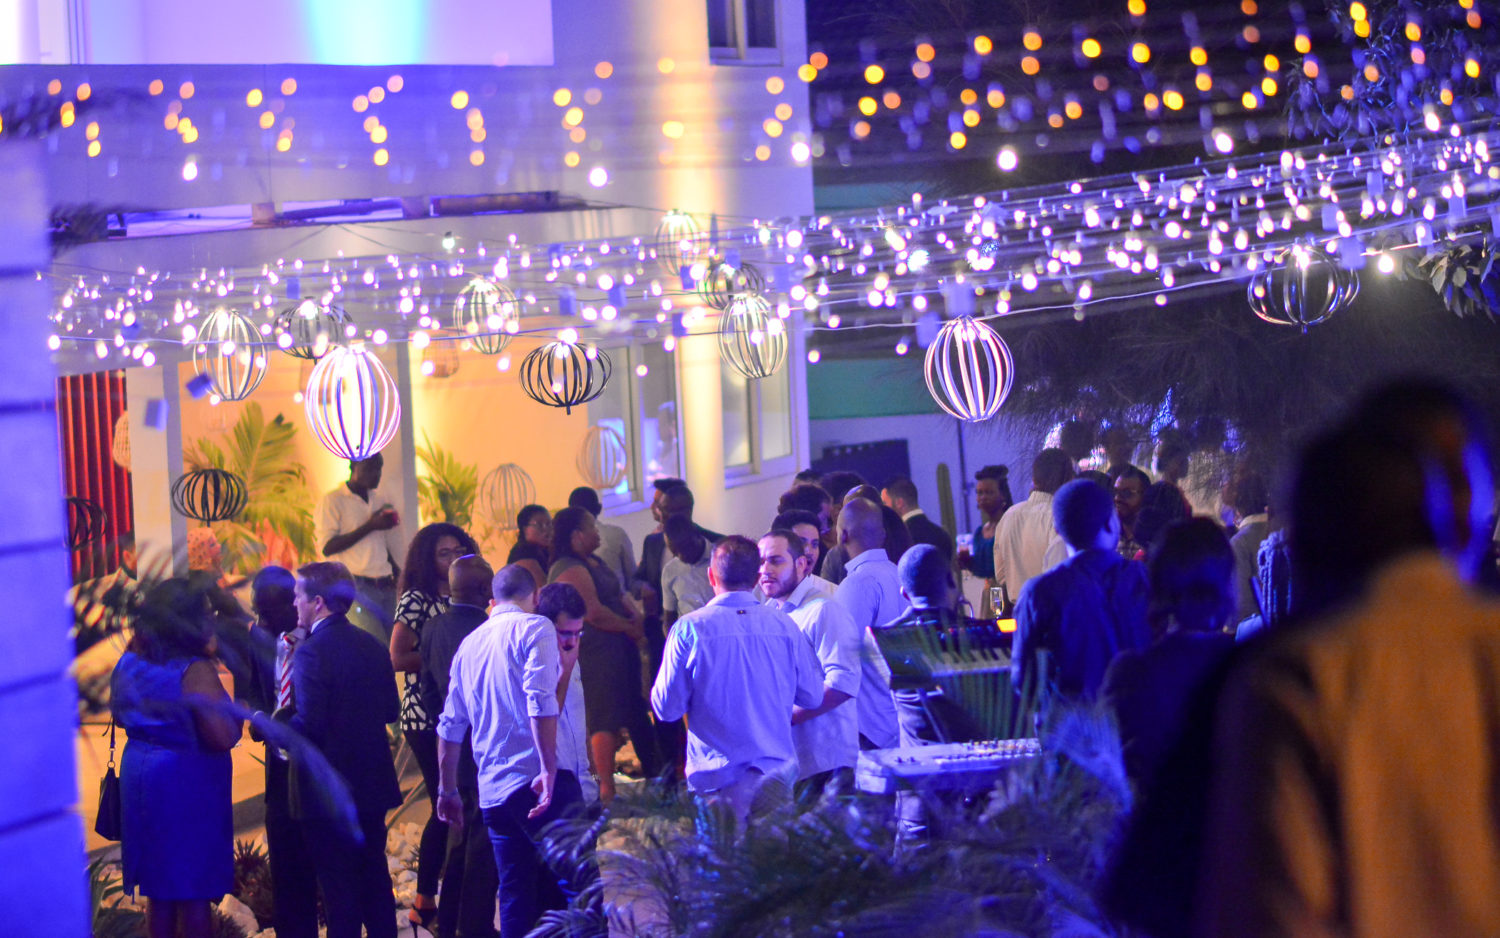 Meet The Woman At The Helm Of JamJar, The Luxe Event Service Changing The Ghanaian Creative Landscape